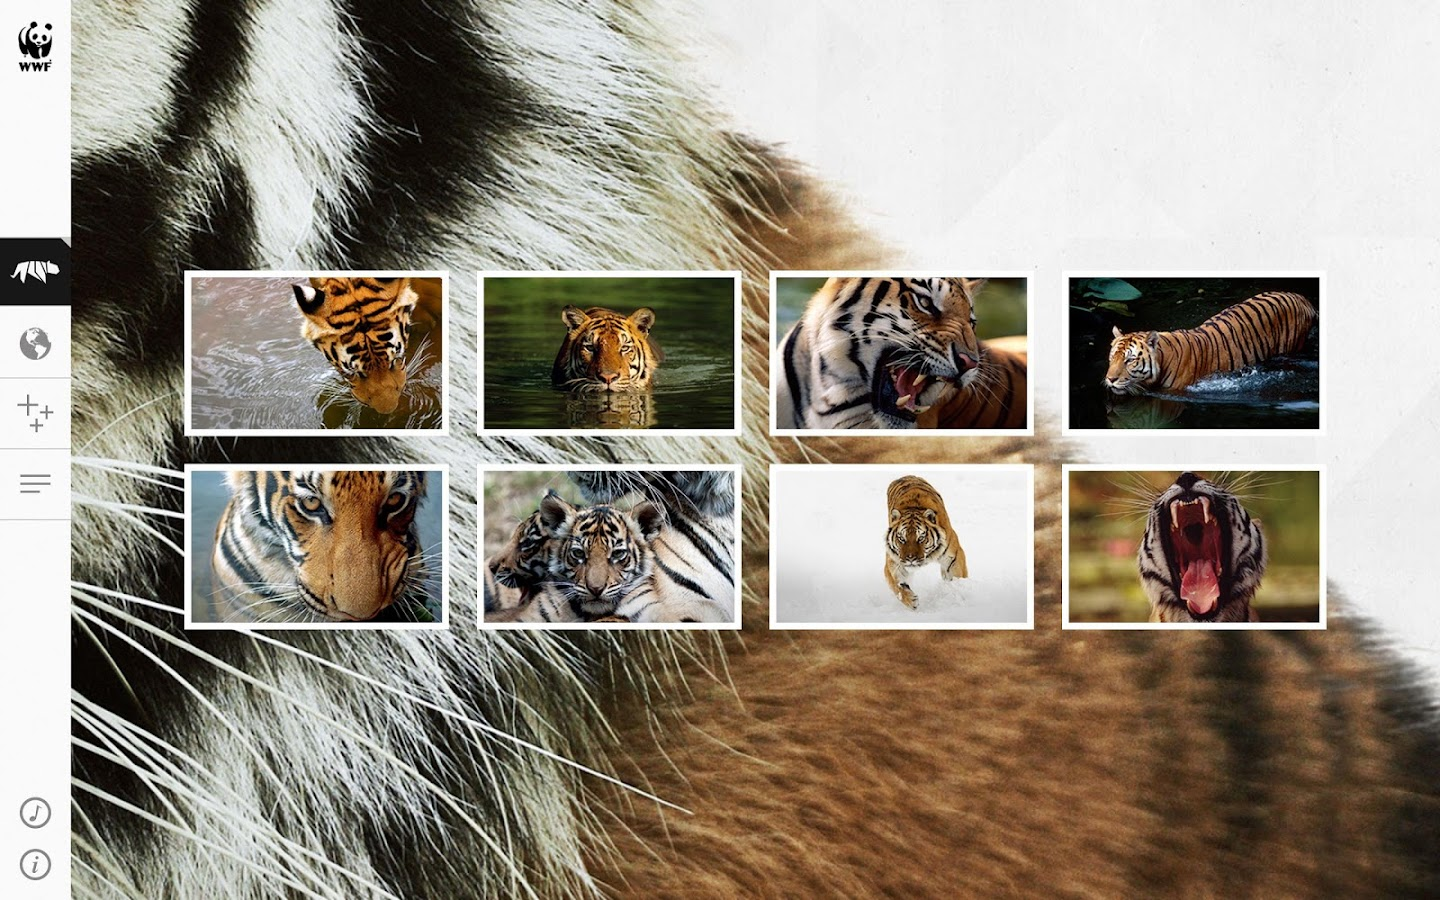 WWF Together: captura de pantalla